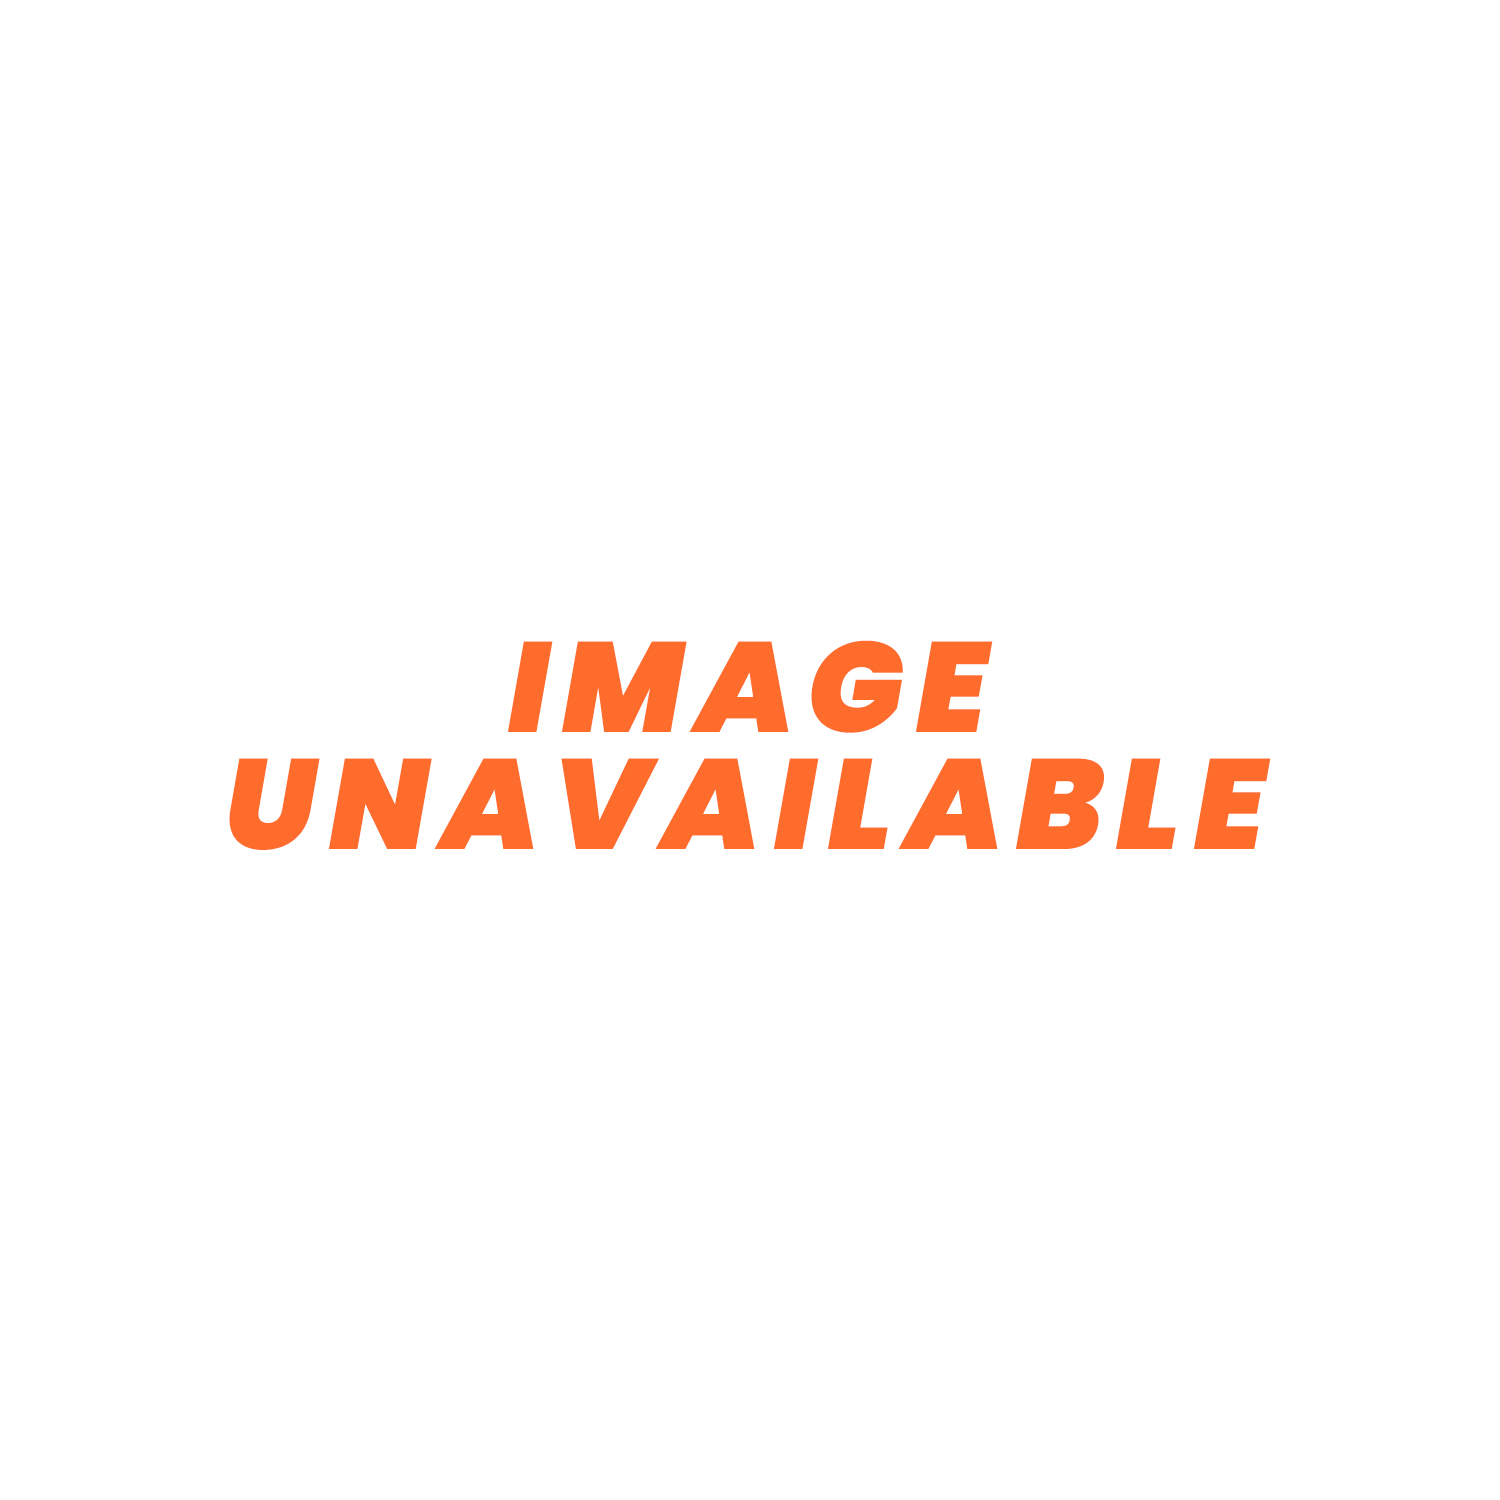 "SPAL Radiator Fan - 5.5"" (140mm) Pull VA39-A101-45A 289cfm"